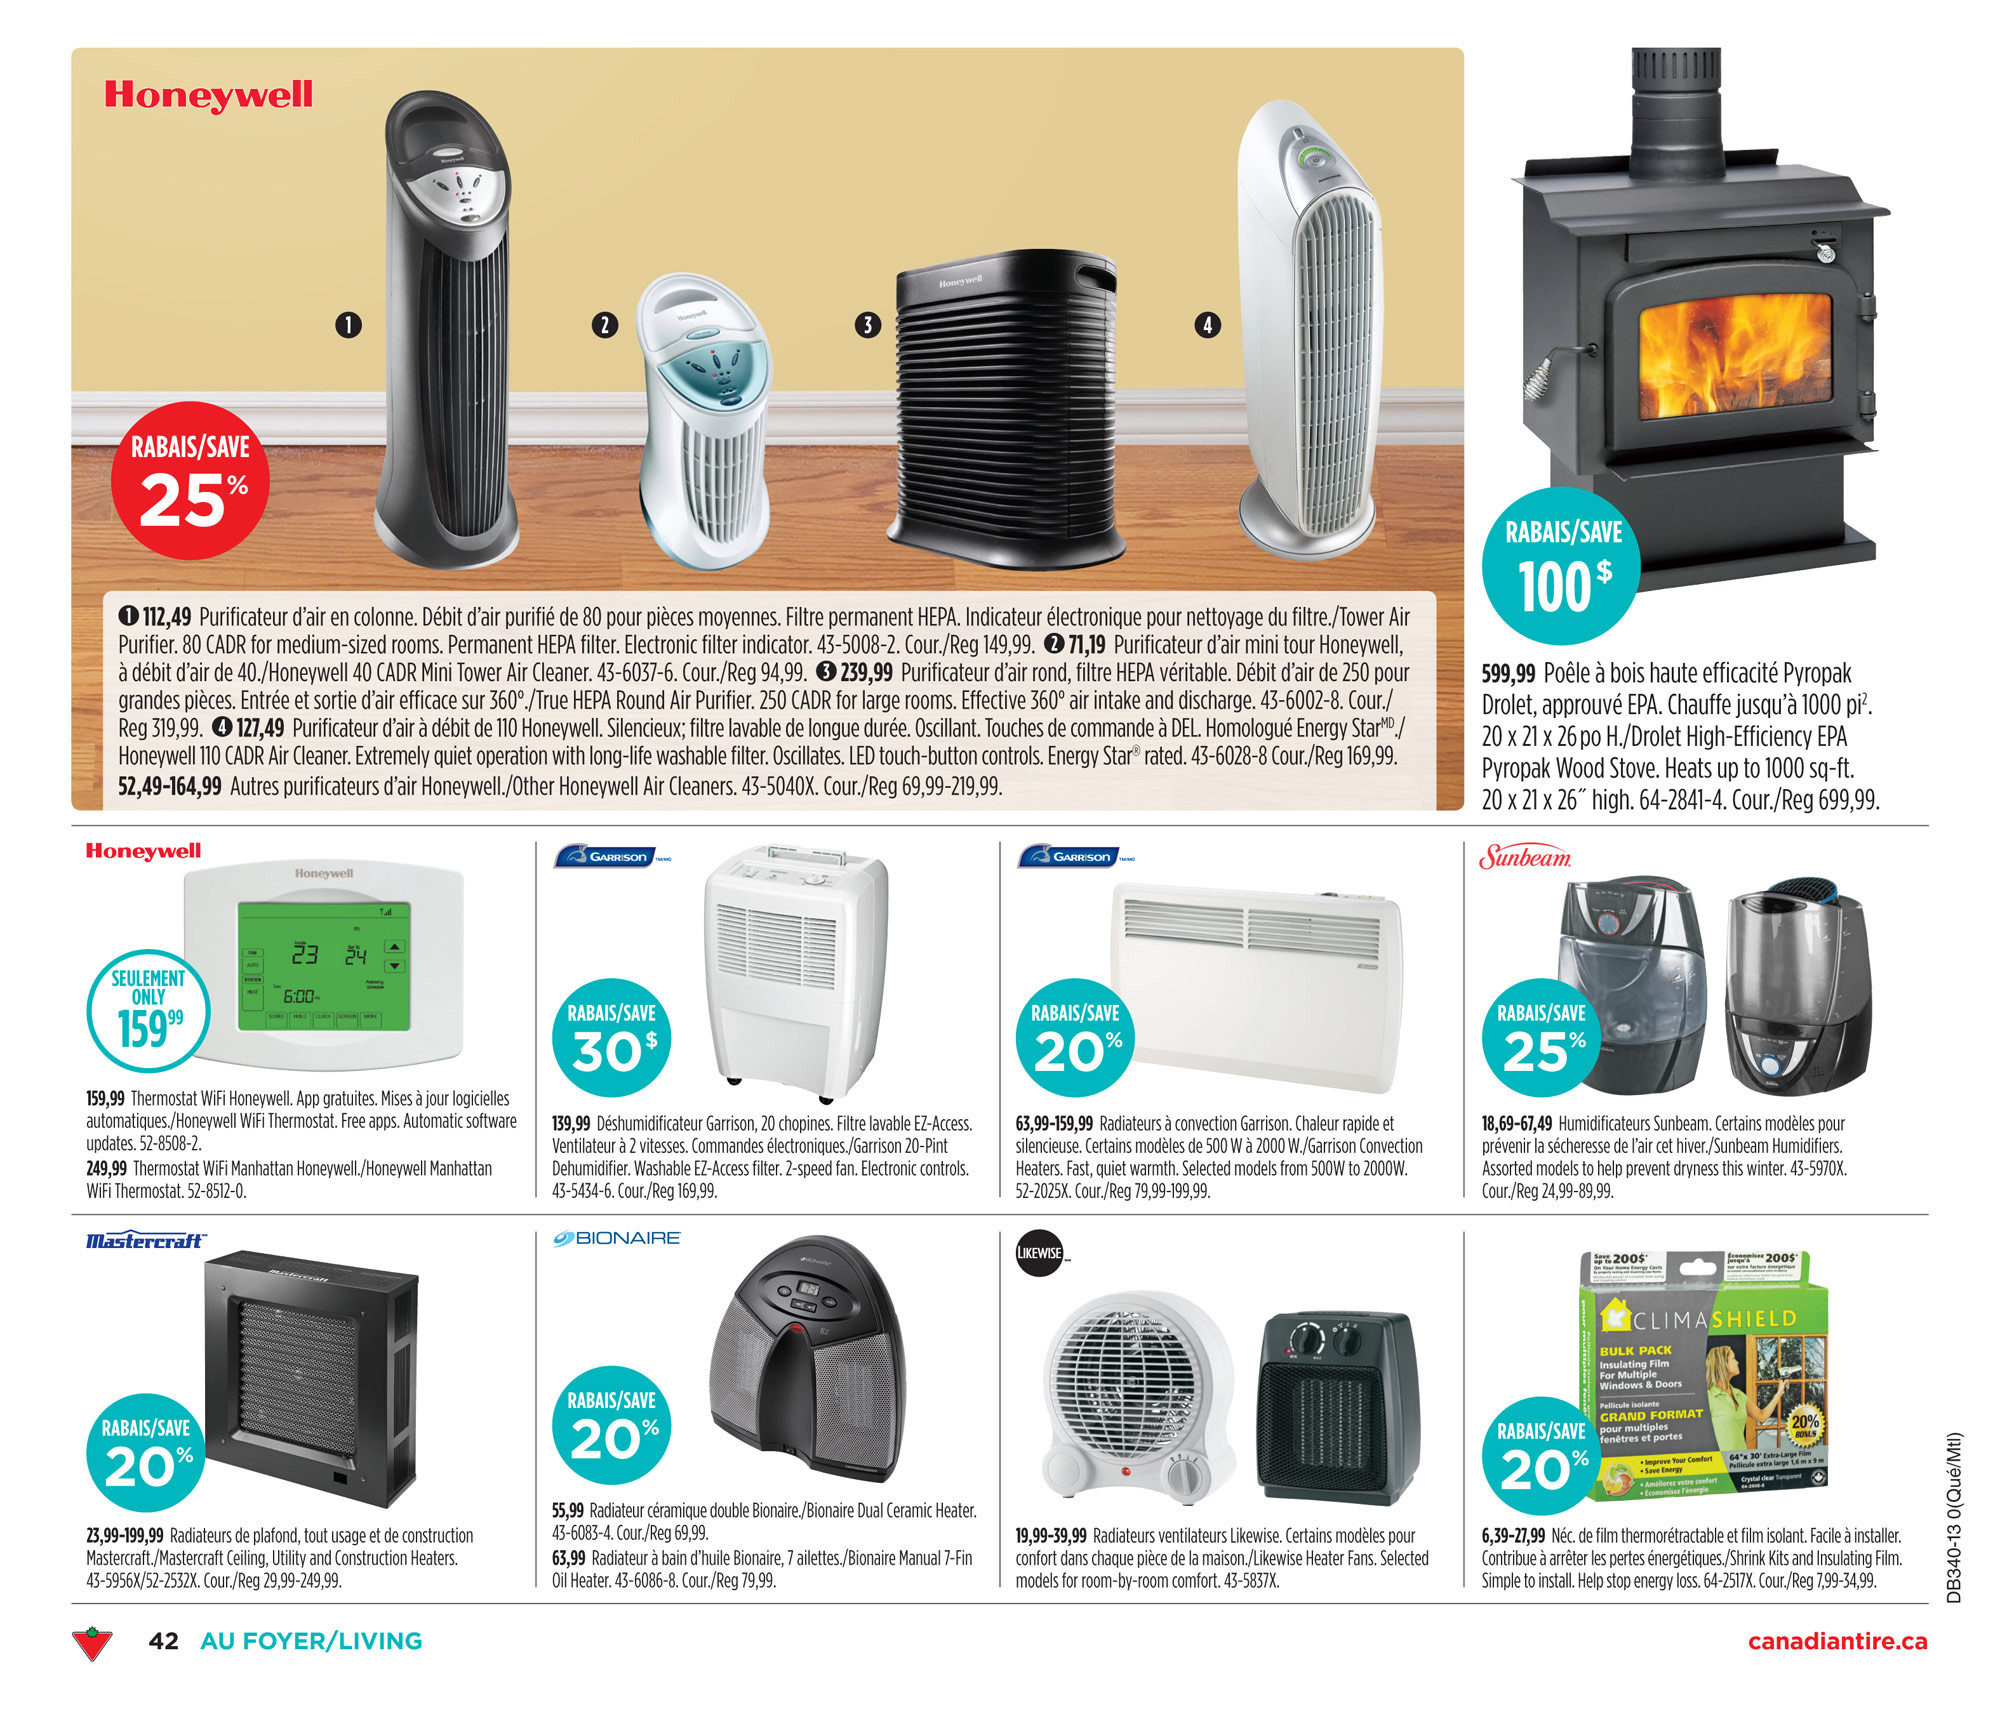 Canadian Tire Weekly Flyer Sep 26 Oct 3 Mastercraft Seat Heater Wiring Diagram